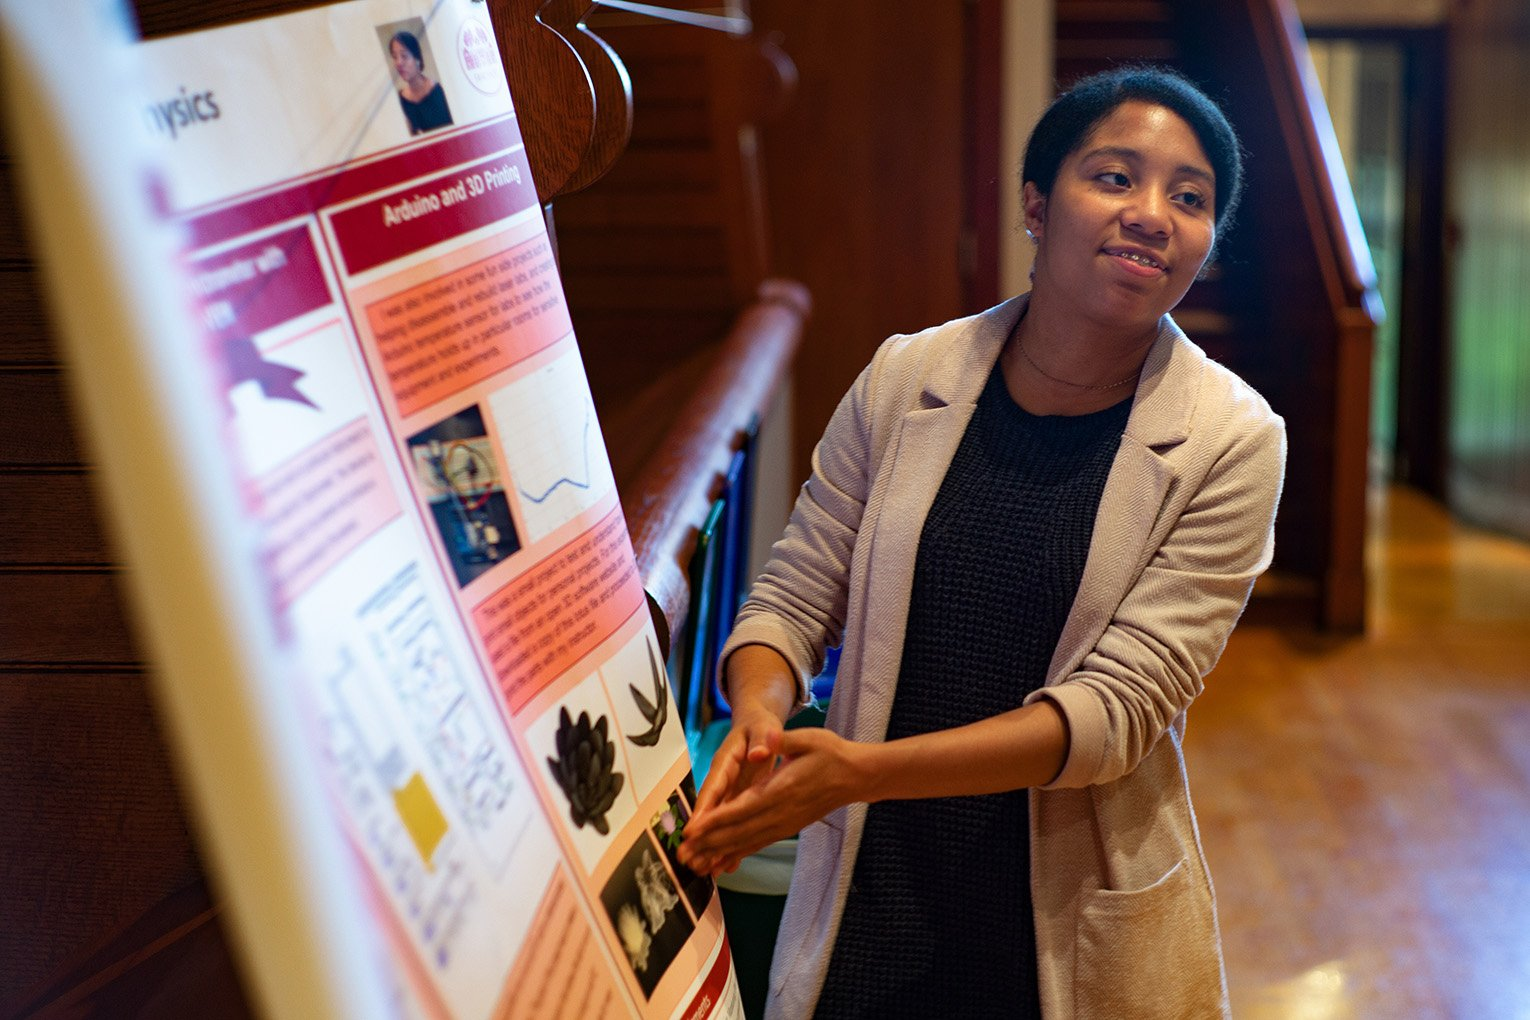 Student presents poster during session in Upper Tarble